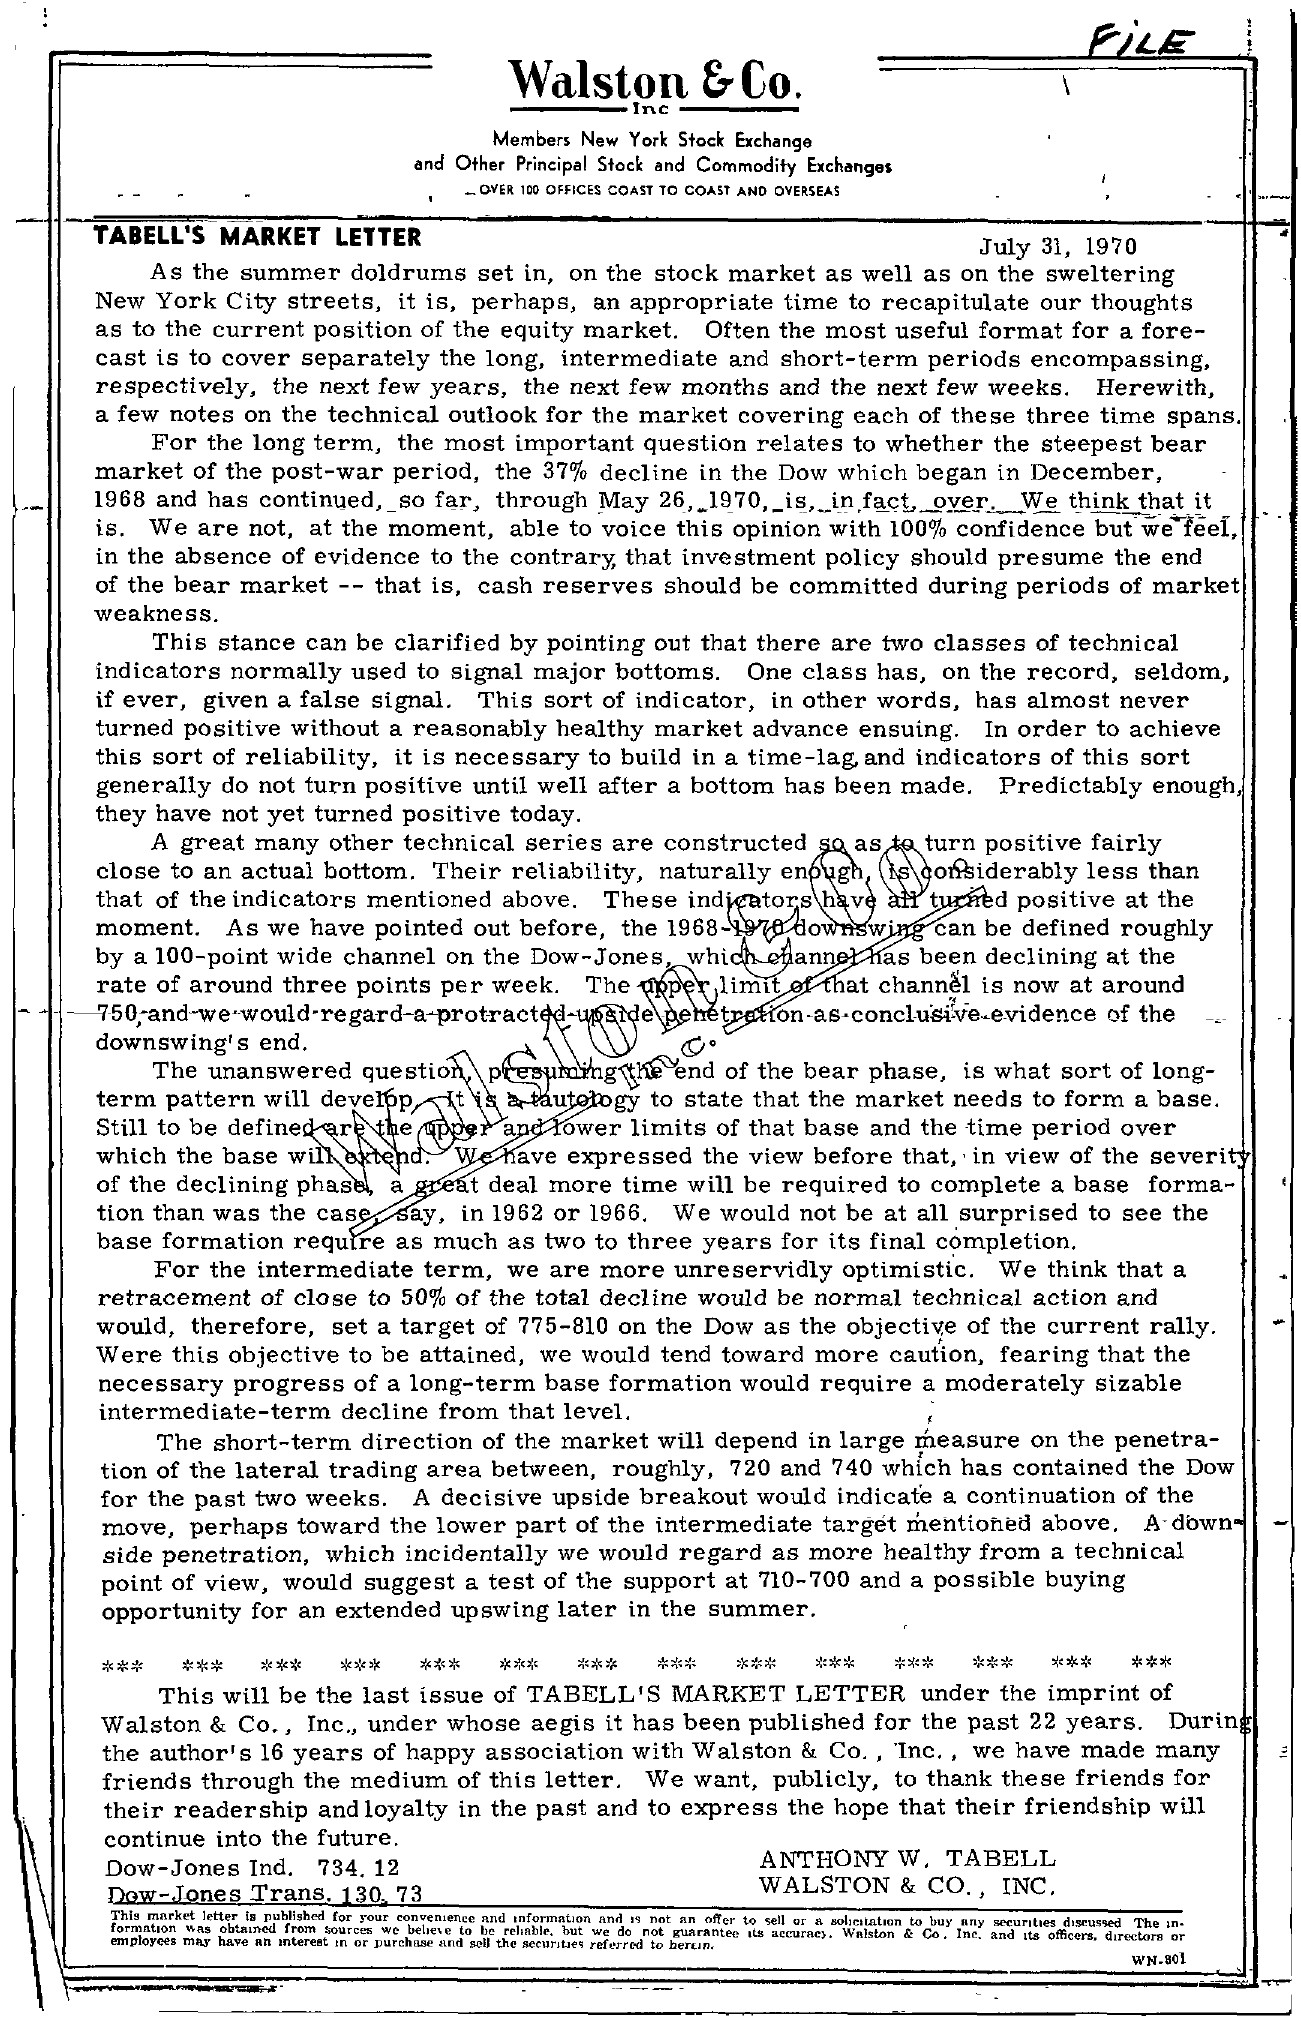 Tabell's Market Letter - July 31, 1970